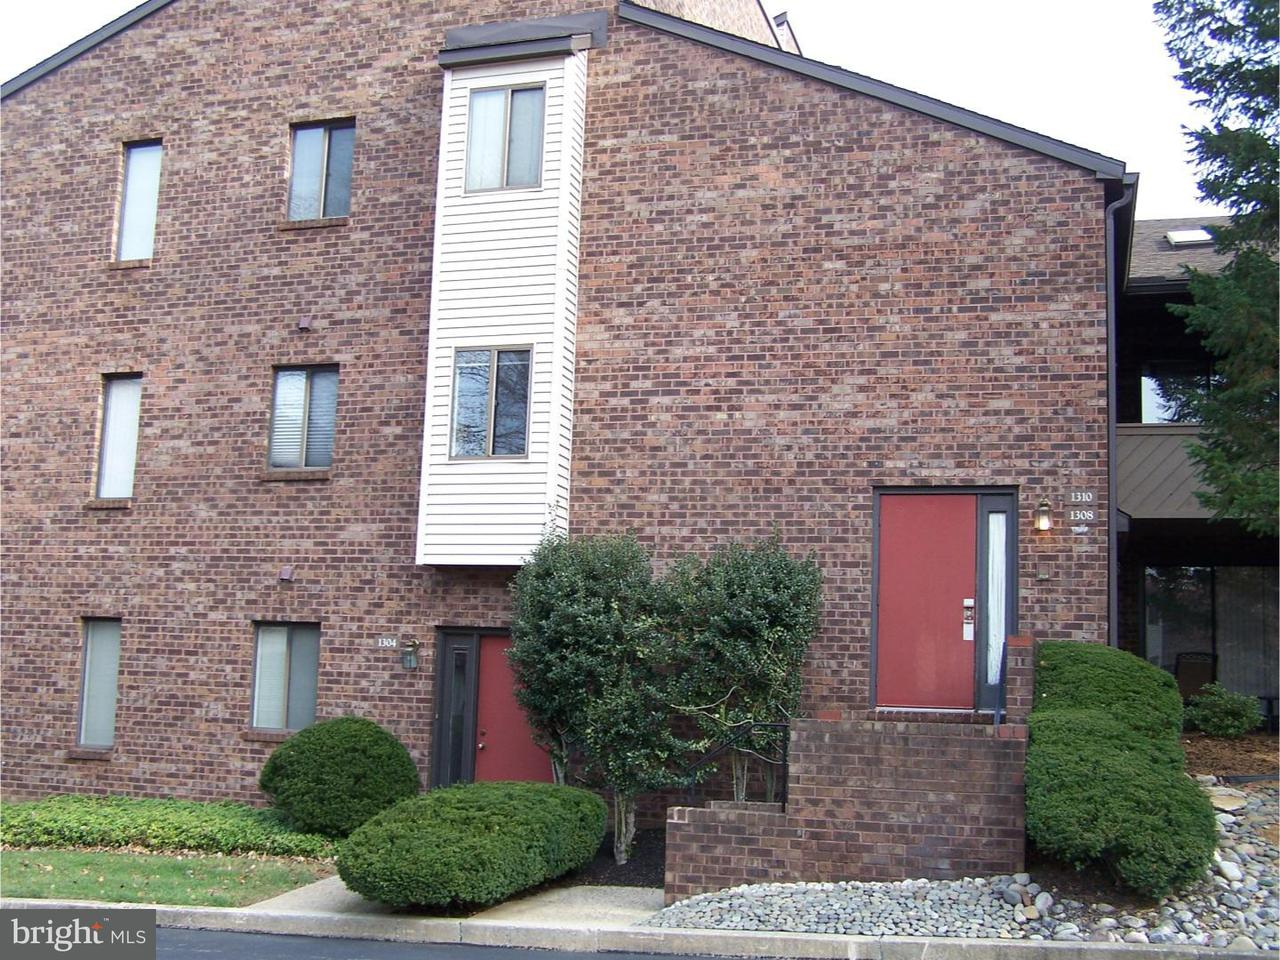 Single Family Home for Rent at 1308 MOUNTAIN VIEW Drive Wayne, Pennsylvania 19087 United States